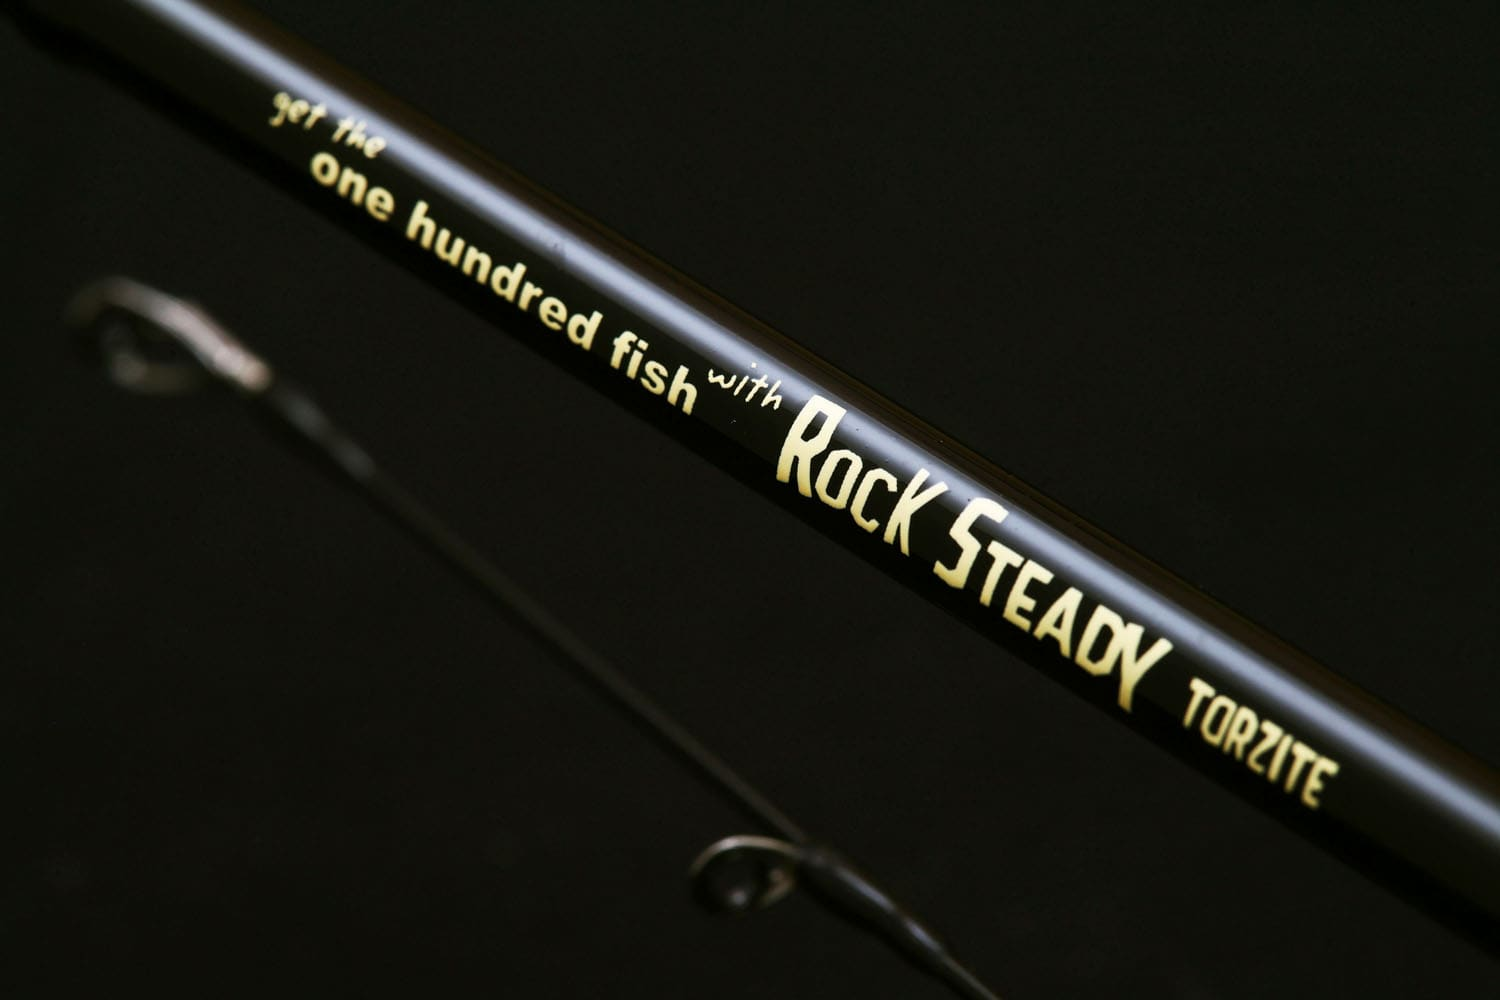 1rod008-ul6 Rocksteady torzite